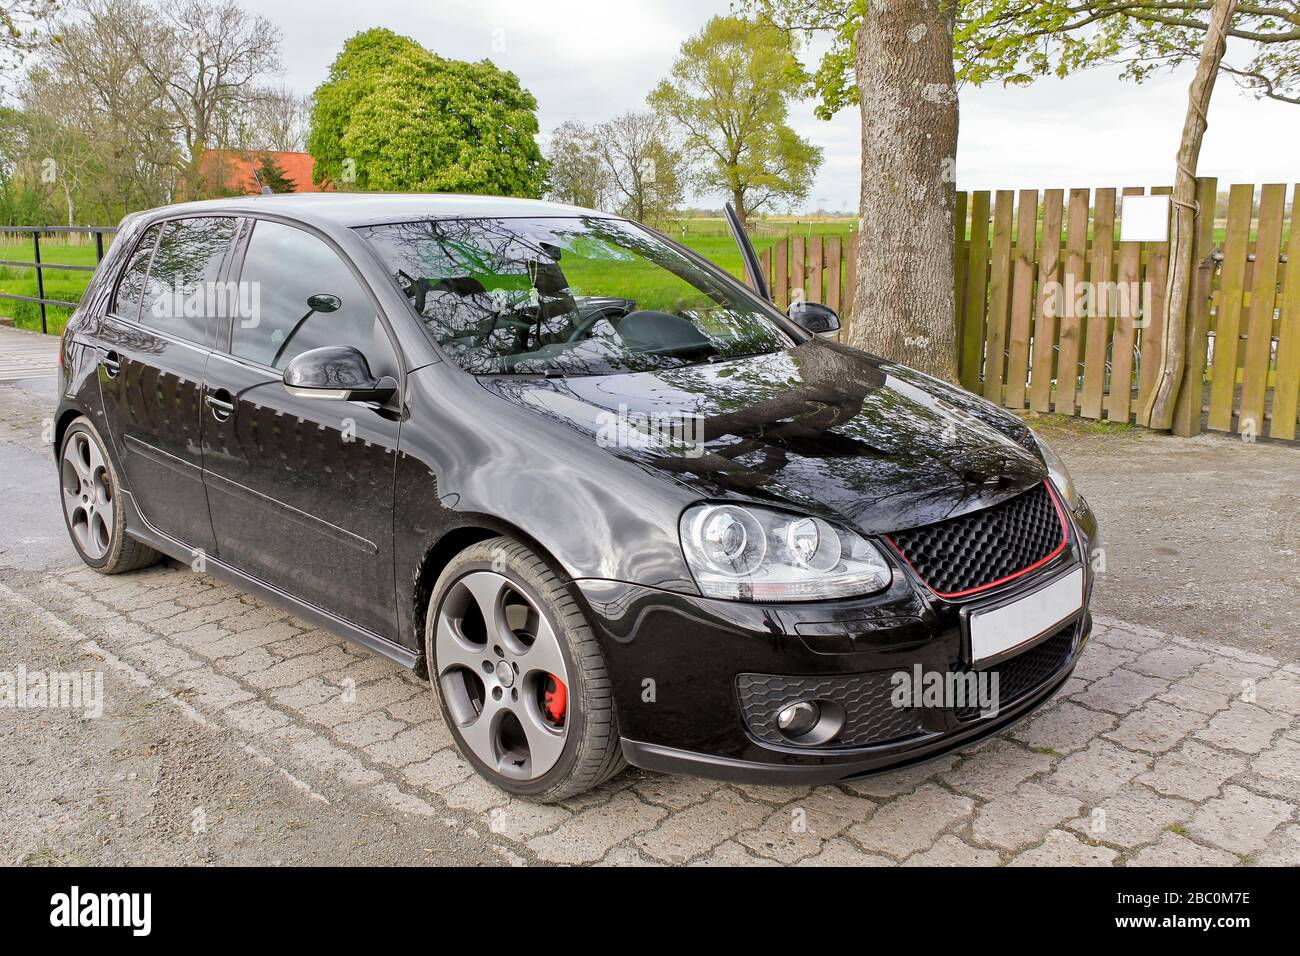 Volkswagen Golf Sport High Resolution Stock Photography And Images Alamy